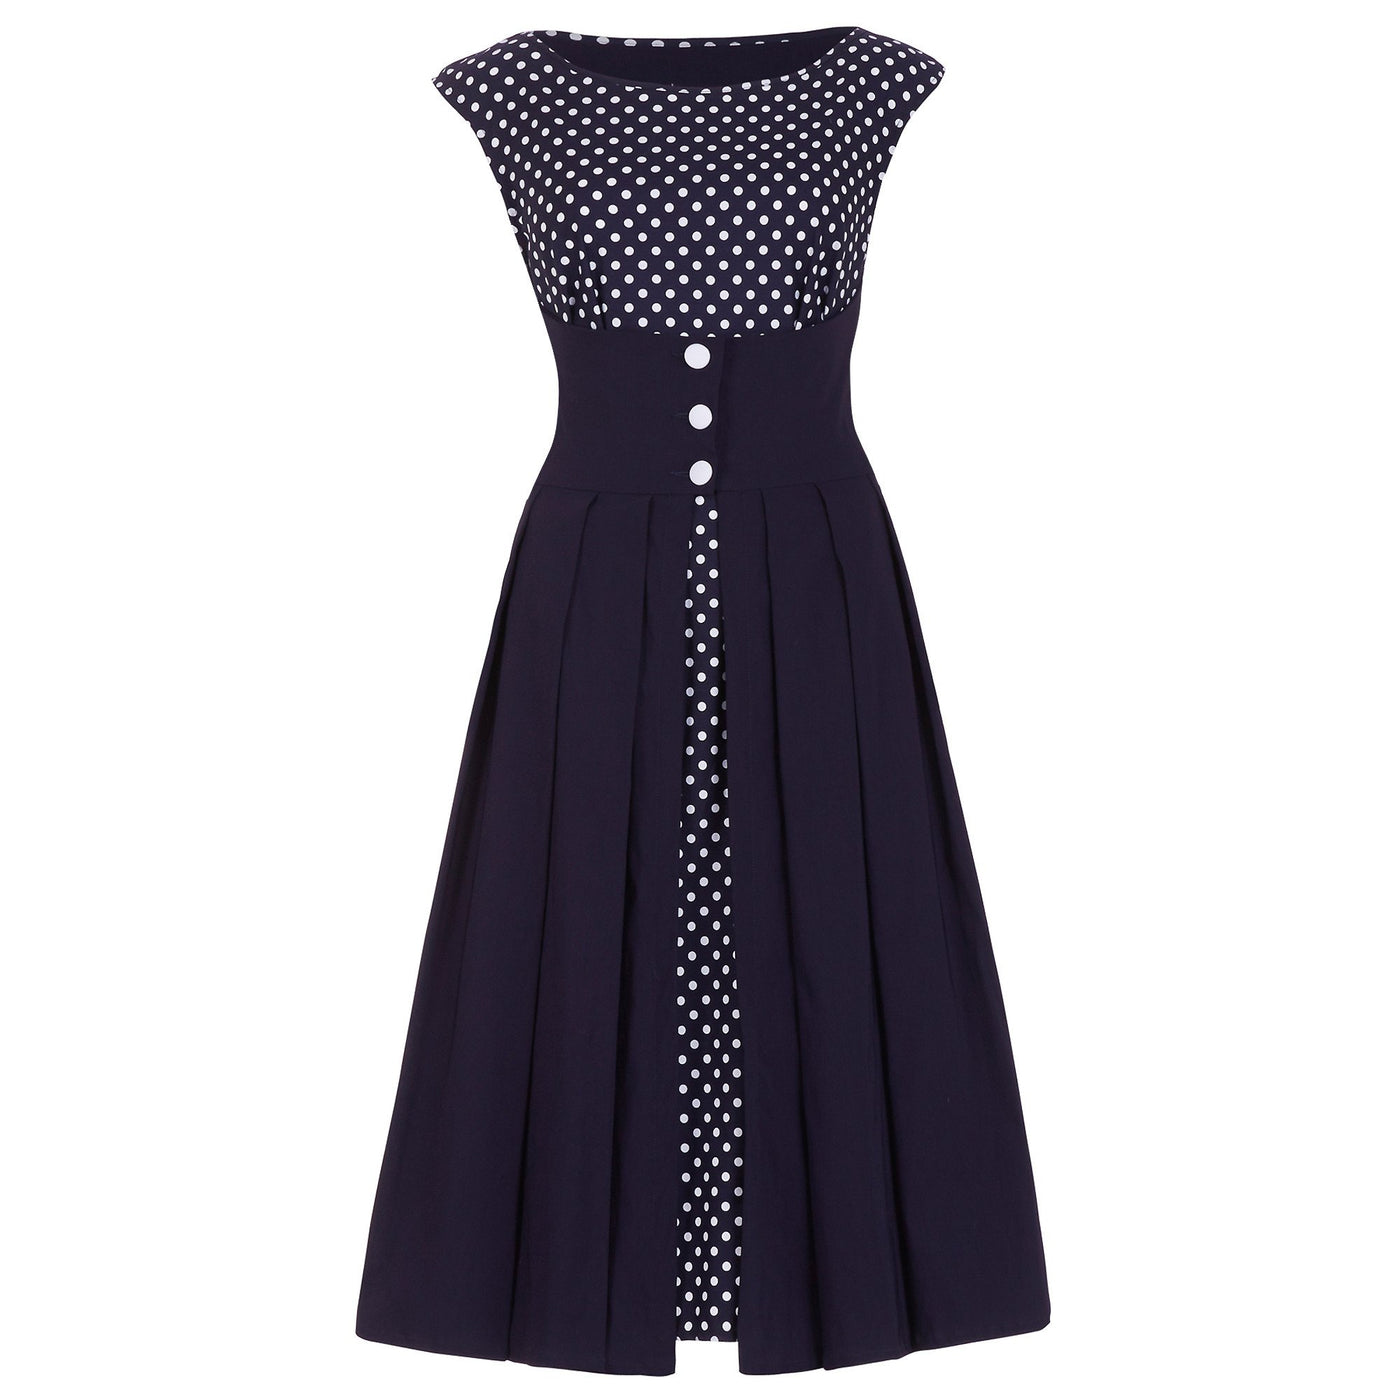 Dollydagger Polka Dot Lulu Dress